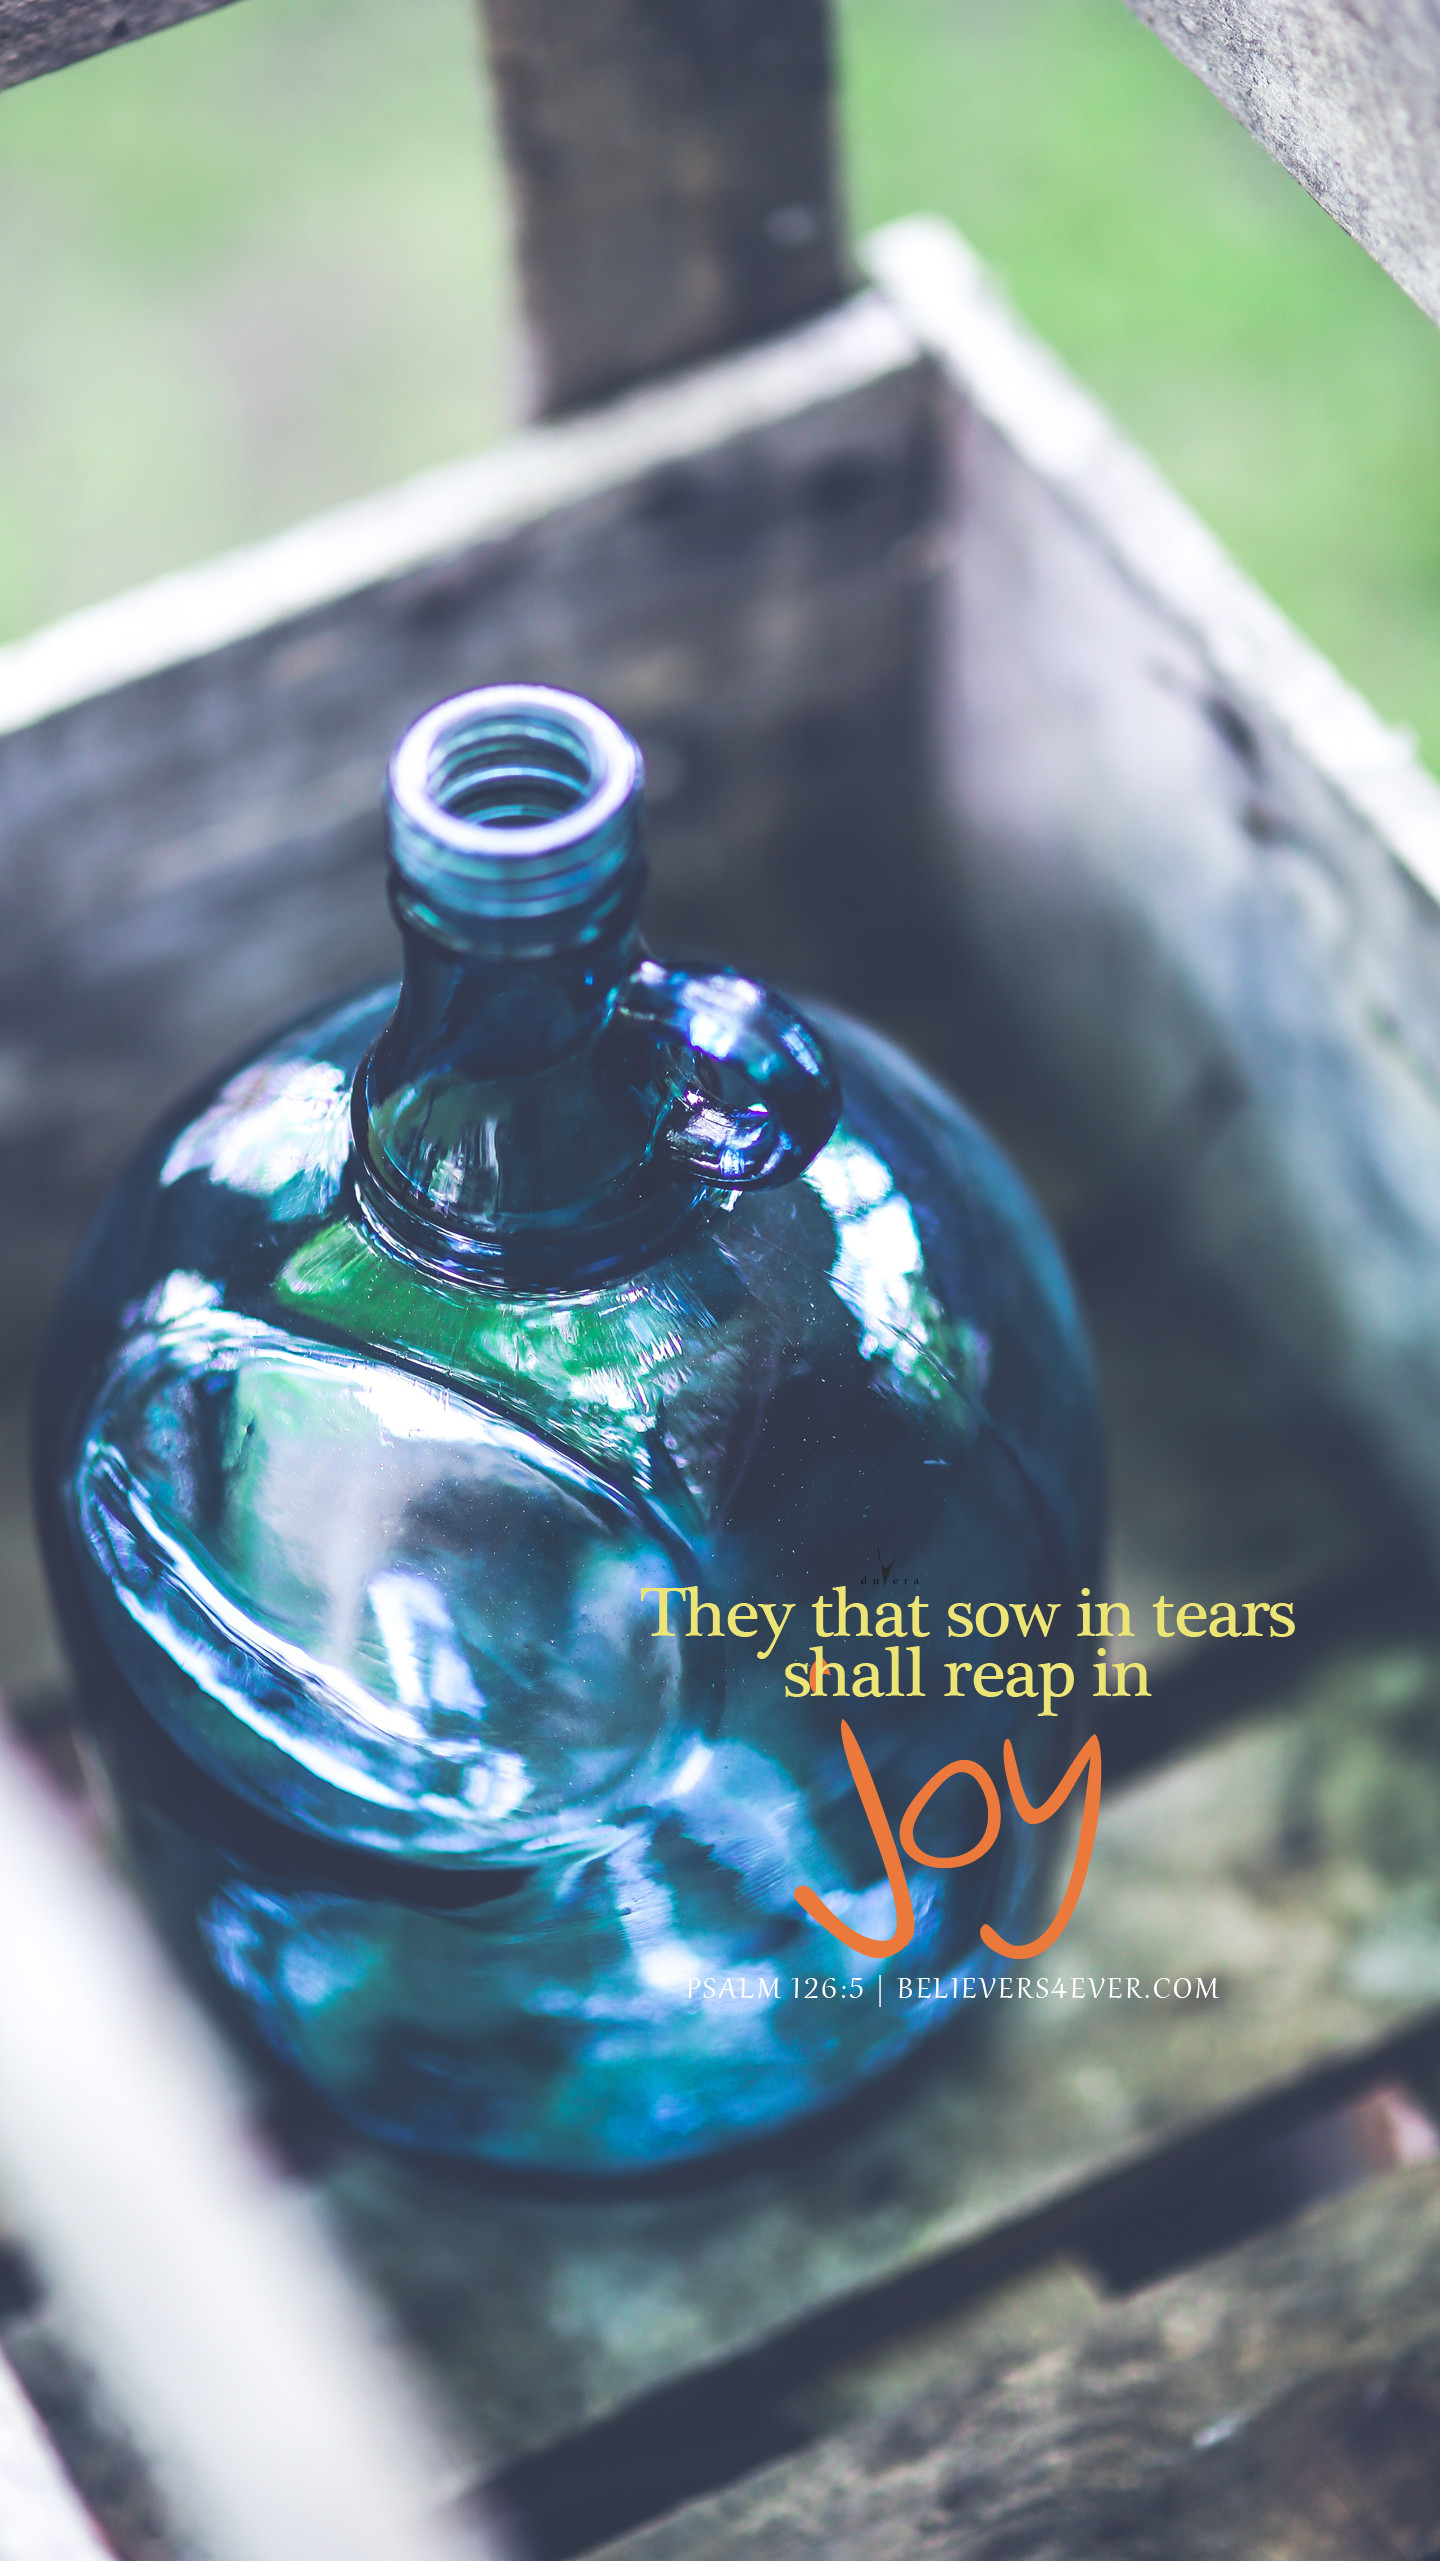 They that sow in tears shall reap in joy. Psalm Android and iphone Christian  mobile phone wallpaper with scripture.